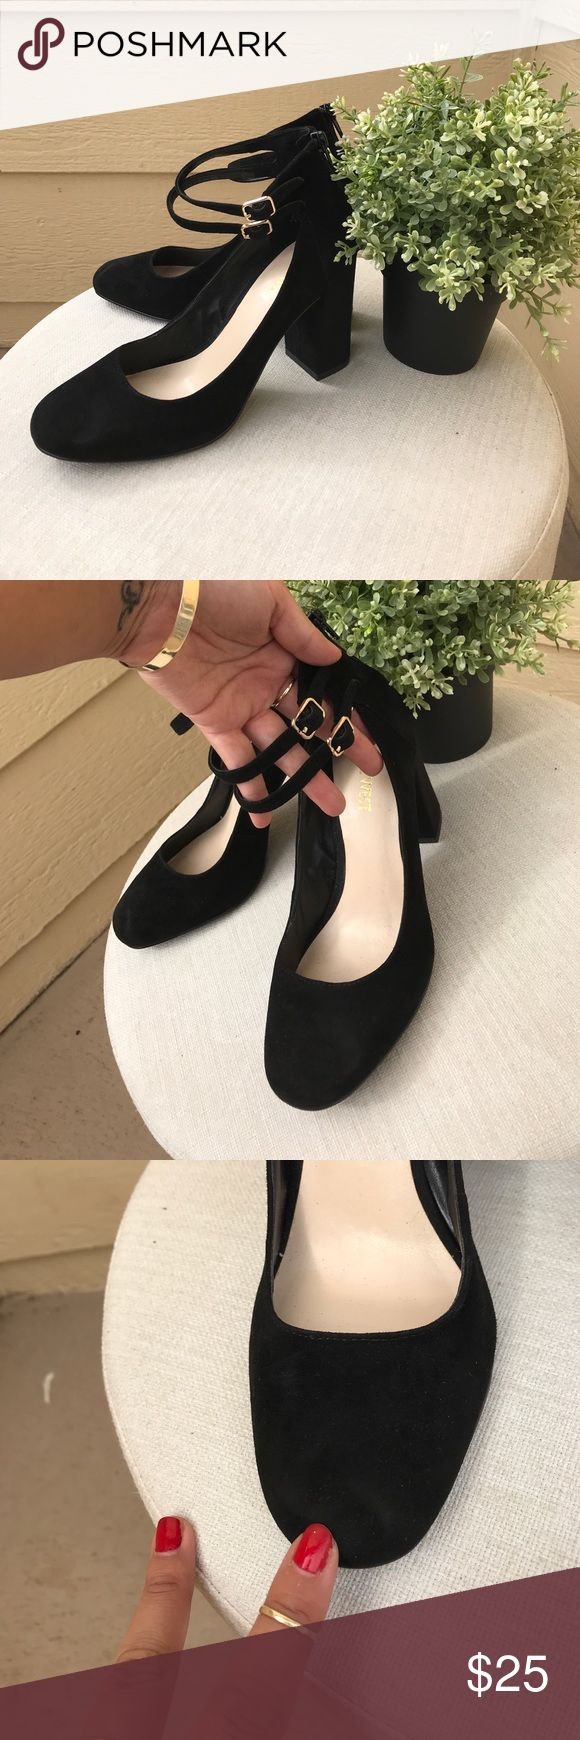 || NWOT 9 West: Double Ankle Strap Heels || Another pair of cute heels that don't fit after ankle break. Never worn but does have a minor indent on right shoe form being in storage (3). Features gold hardware on both ankle straps, suede feeling upper, 3.5 heel, rounded toe, and zipper back. Nine West Shoes Heels